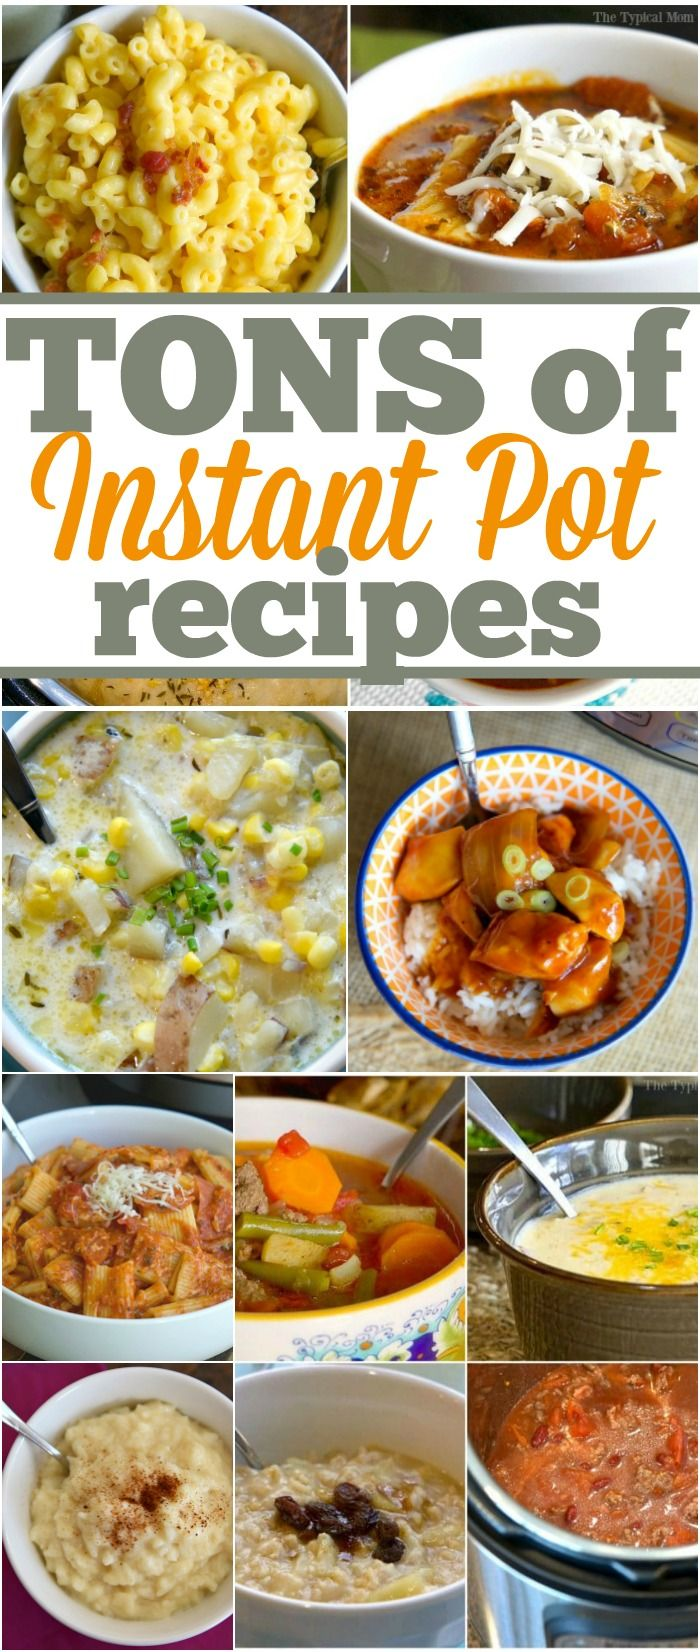 Instant Pot recipes that are easy and delicious! From soups, to main dishes, and even how to make dessert in this pressure cooker.